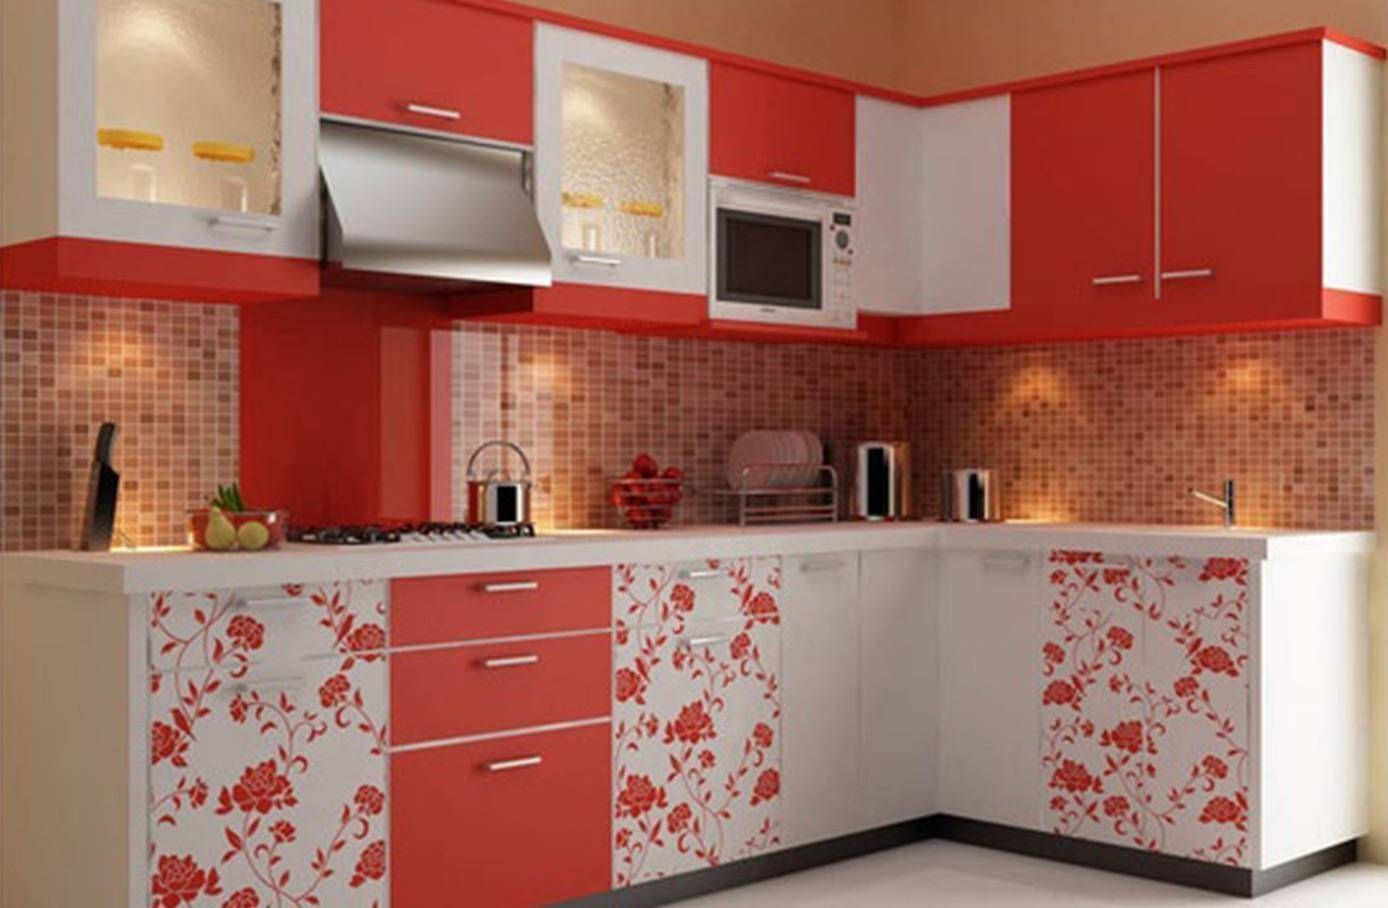 Modular Kitchen Design And Price In Delhimodular Kitchen Design And Price In De In 2020 Kitchen Furniture Design Images Kitchen Remodel Design Kitchen Furniture Design